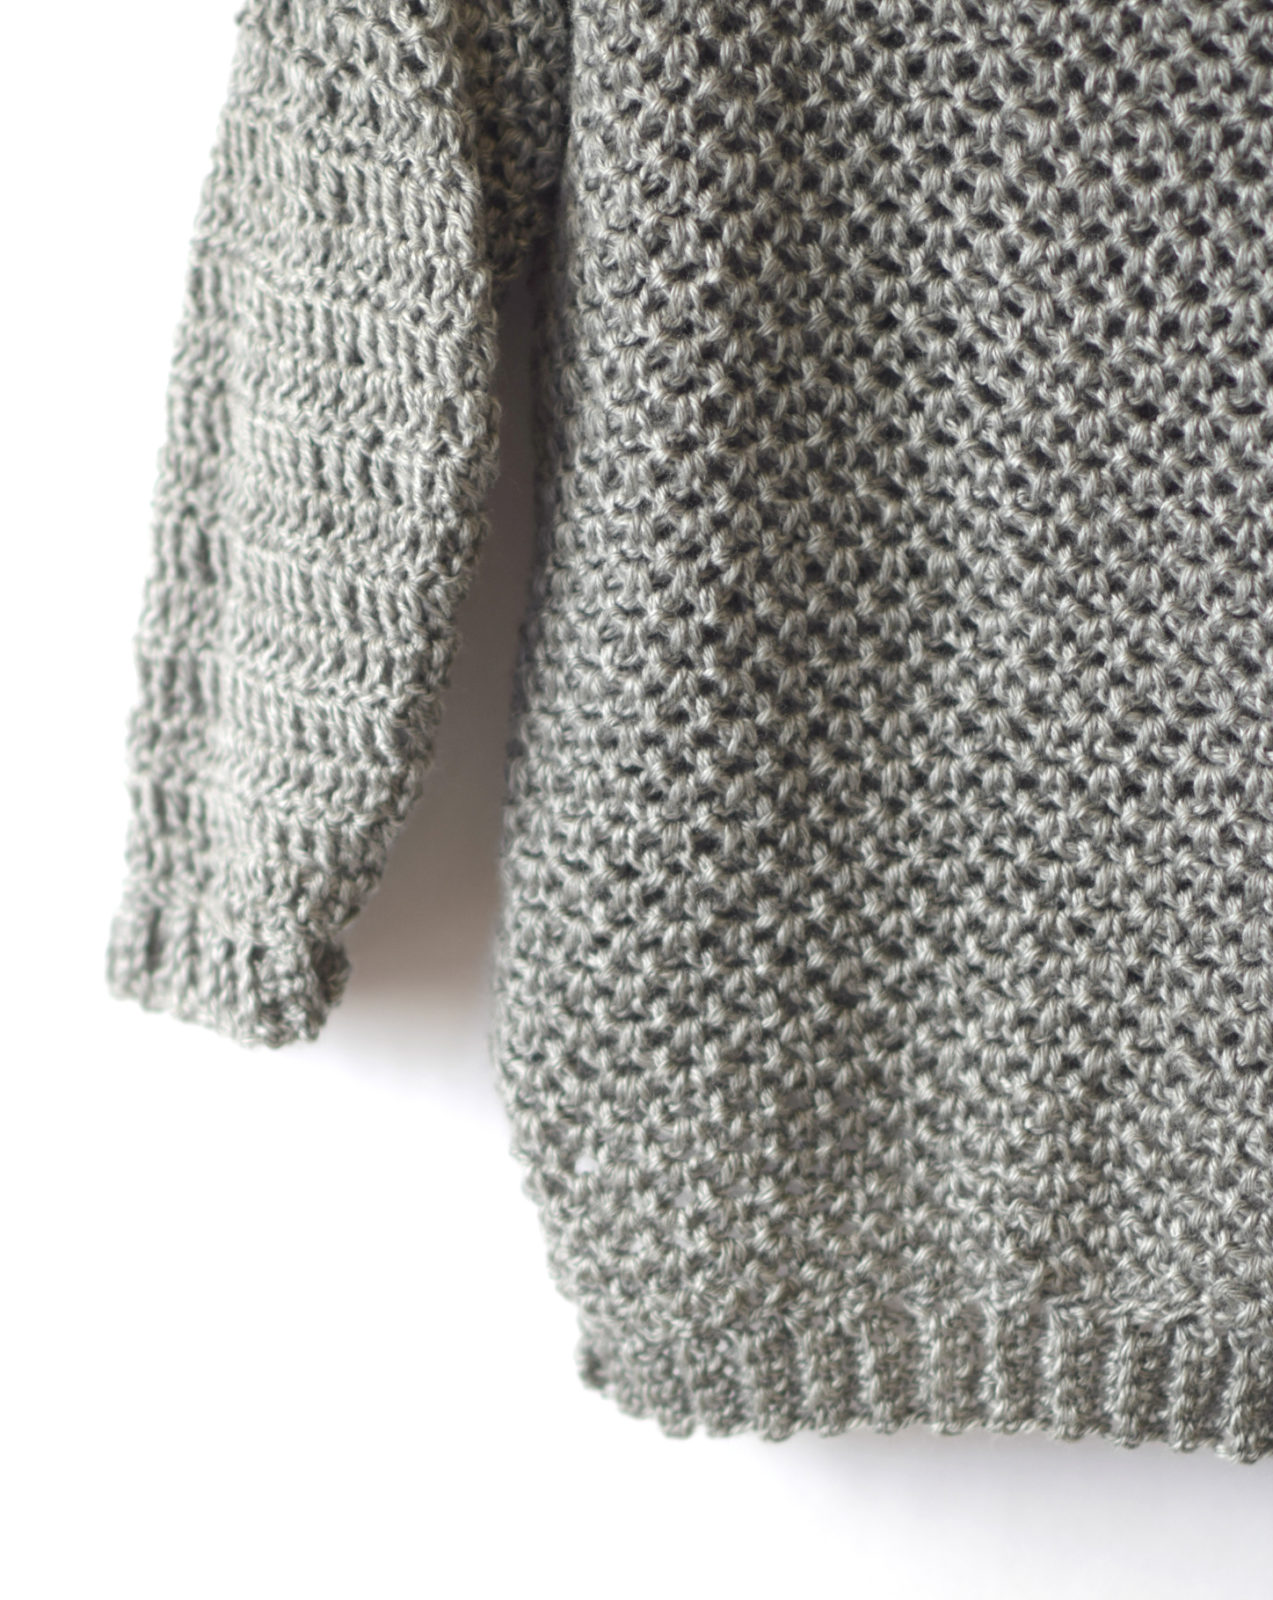 How To Make An Easy Crocheted Sweater Knit Like Mama In A Stitch